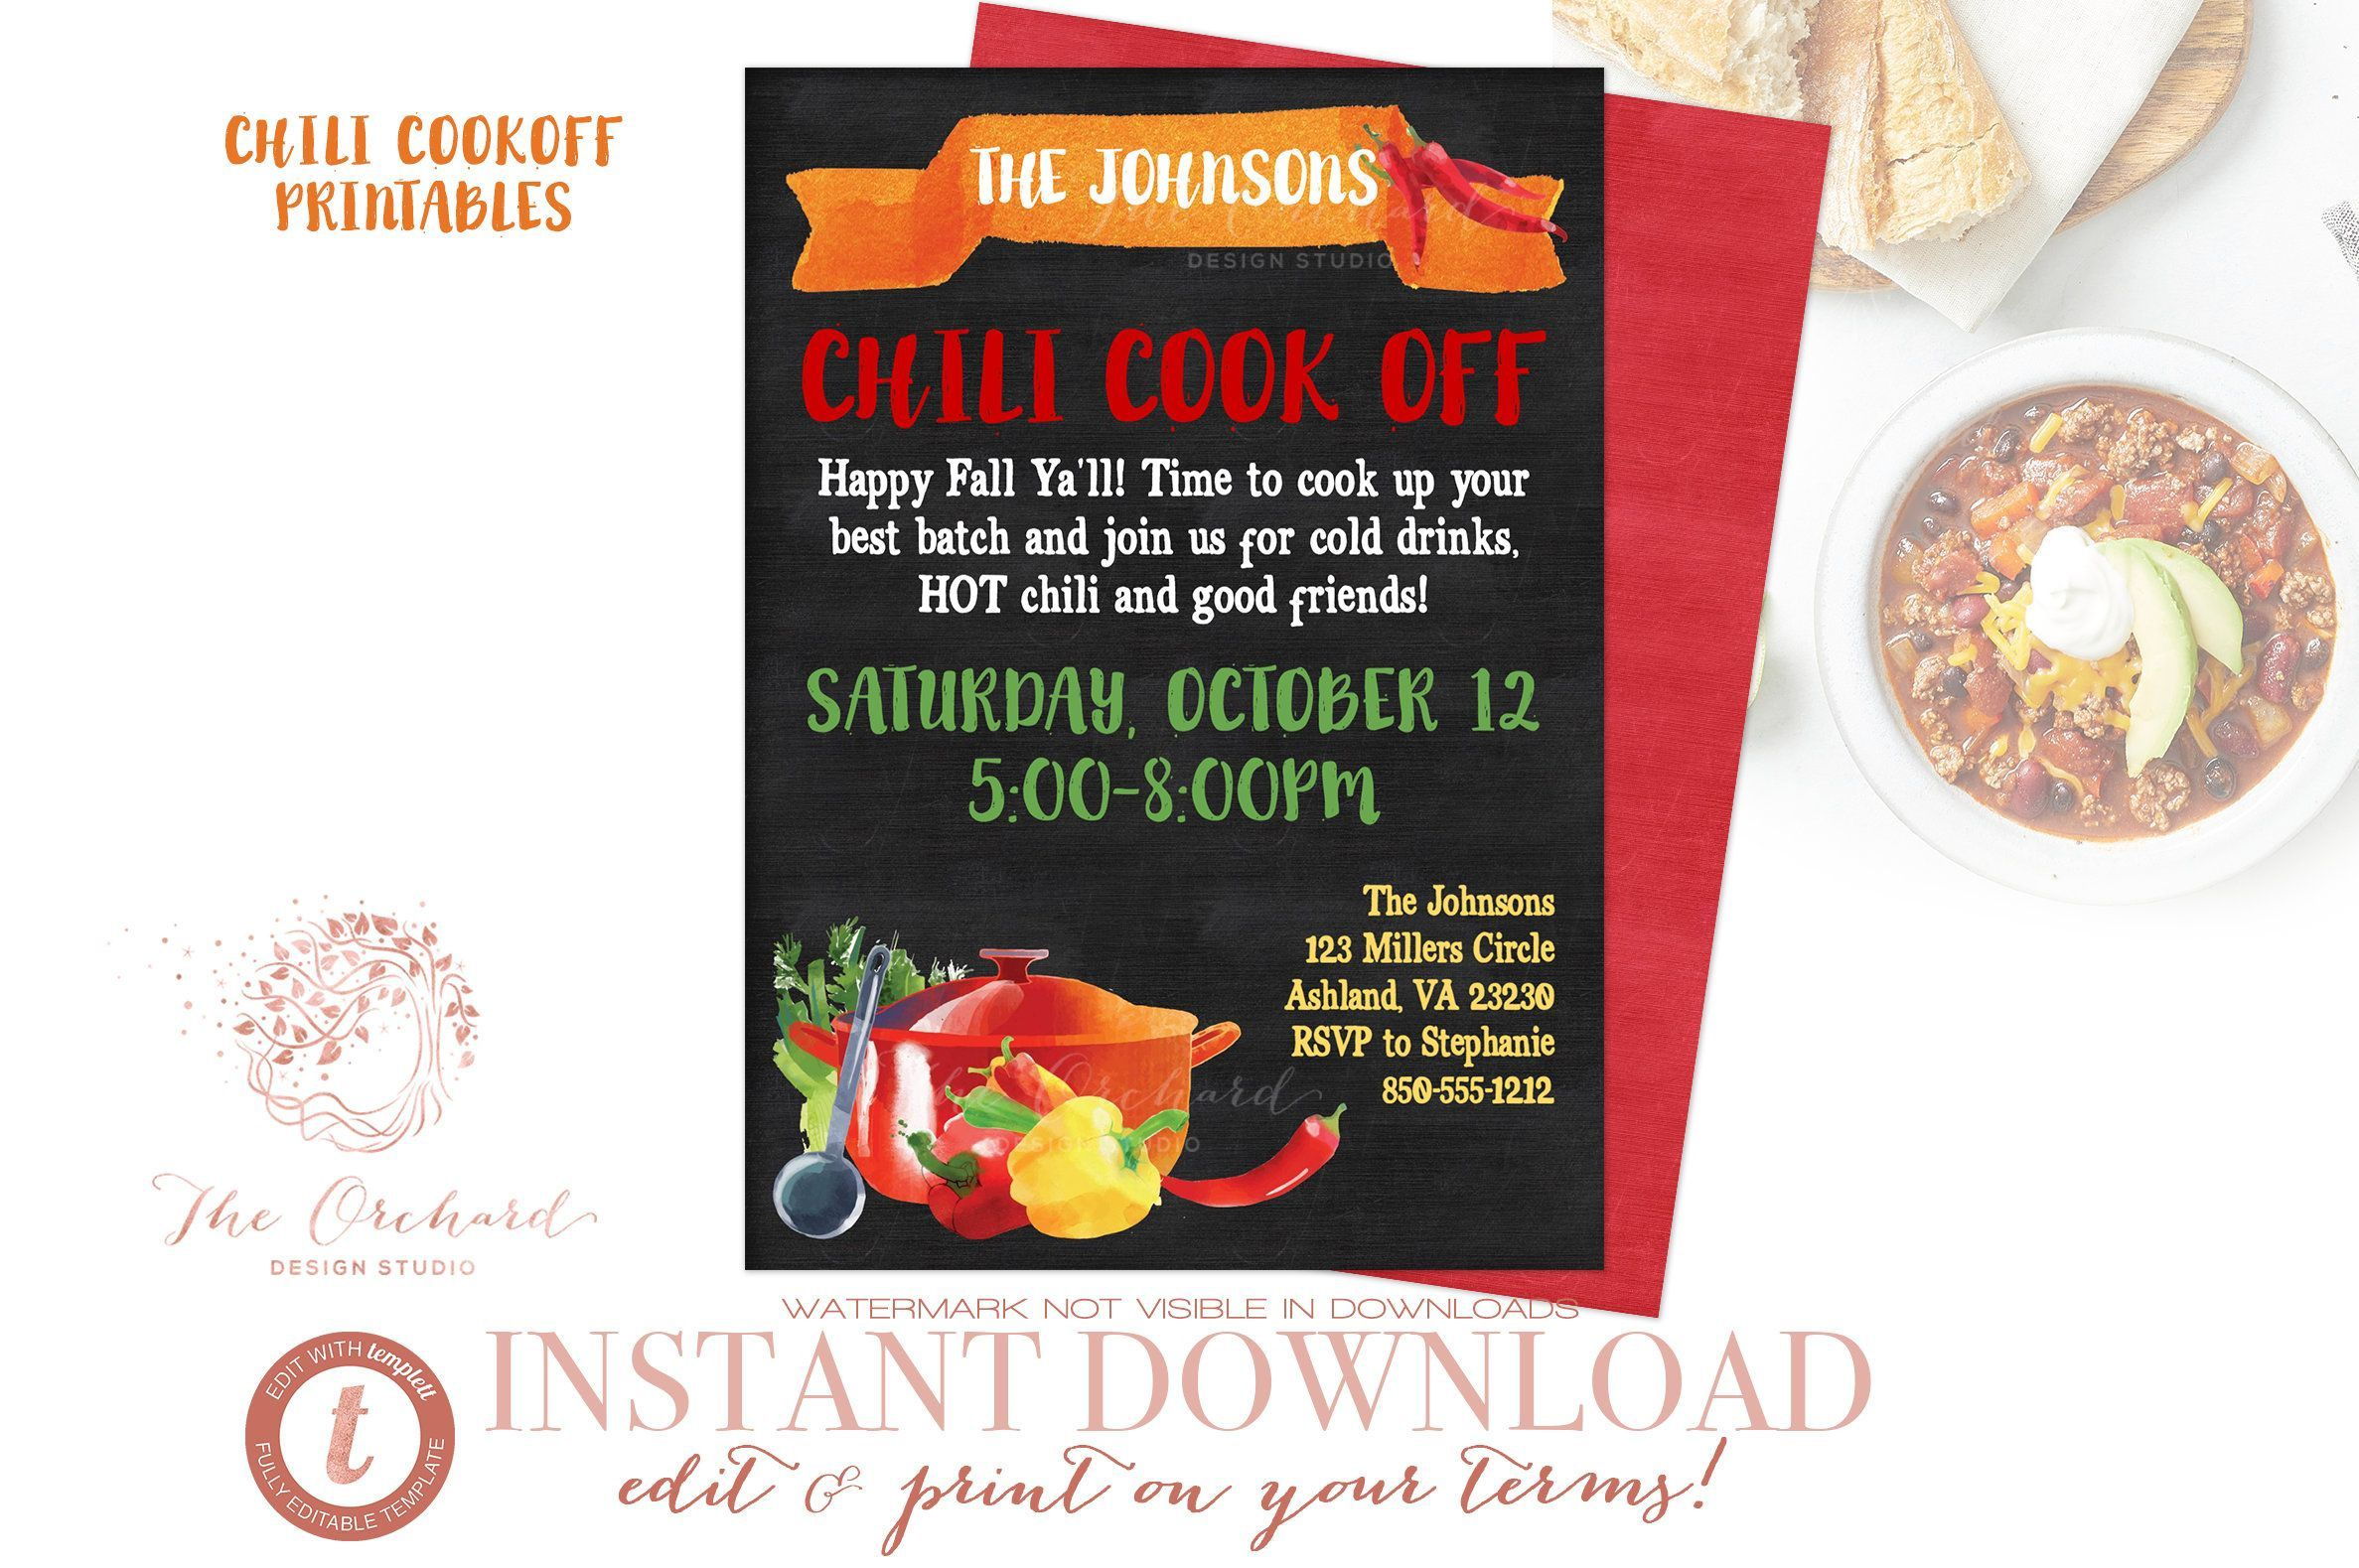 005 Impressive Chili Cook Off Flyer Template Highest Quality  Halloween Office PowerpointFull